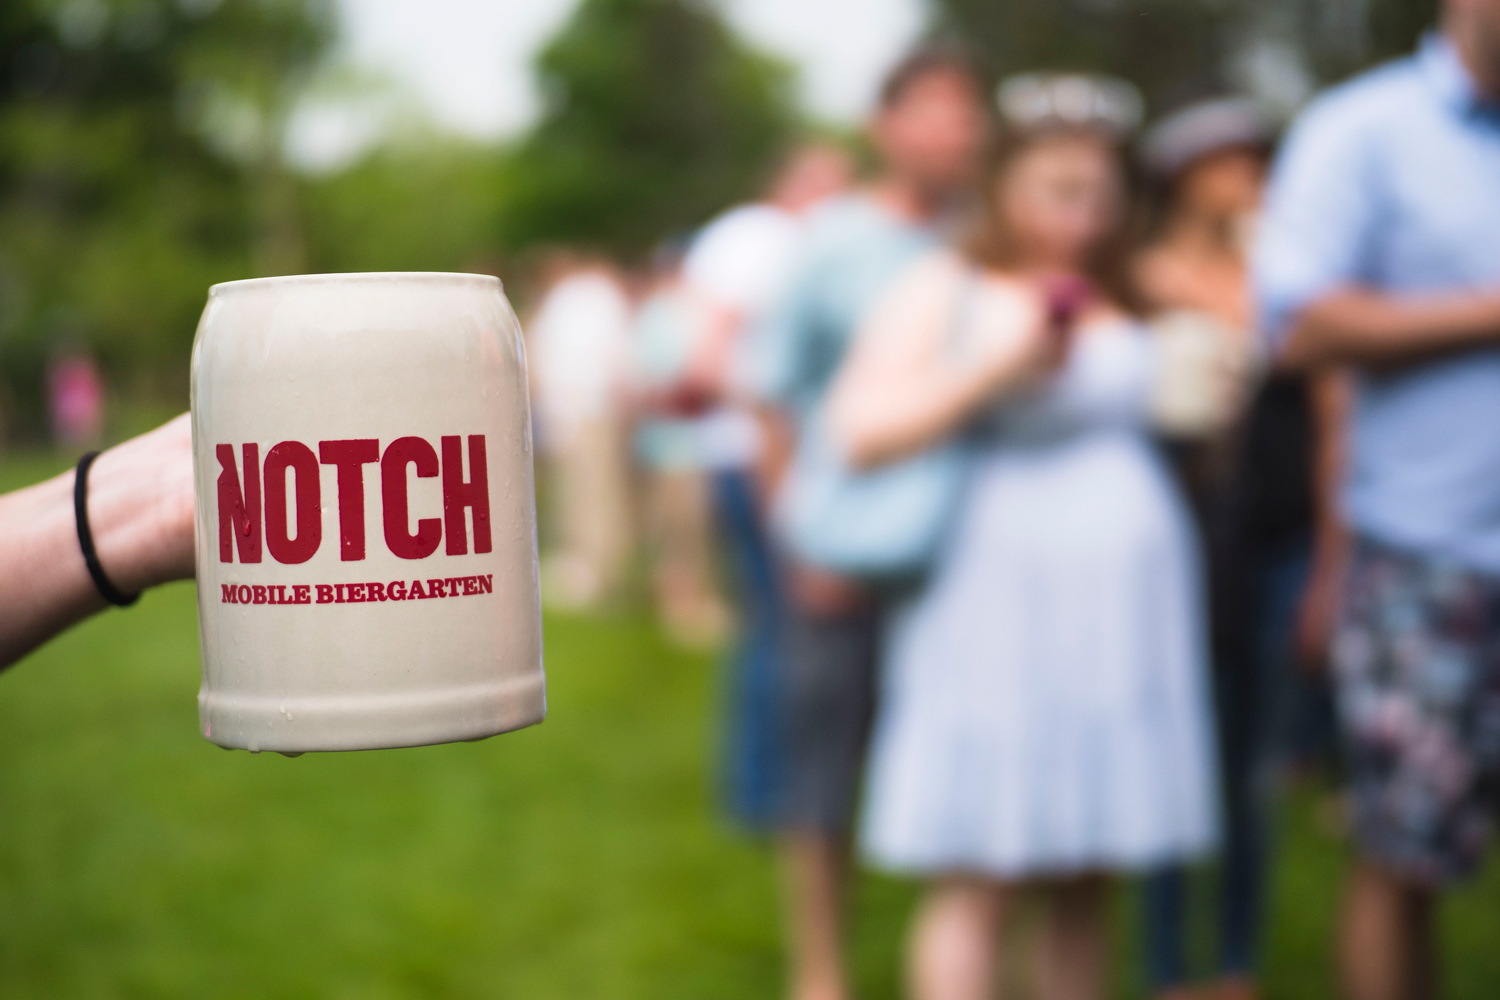 NOTCH-MOBILE-BIERGARTEN-3.jpg